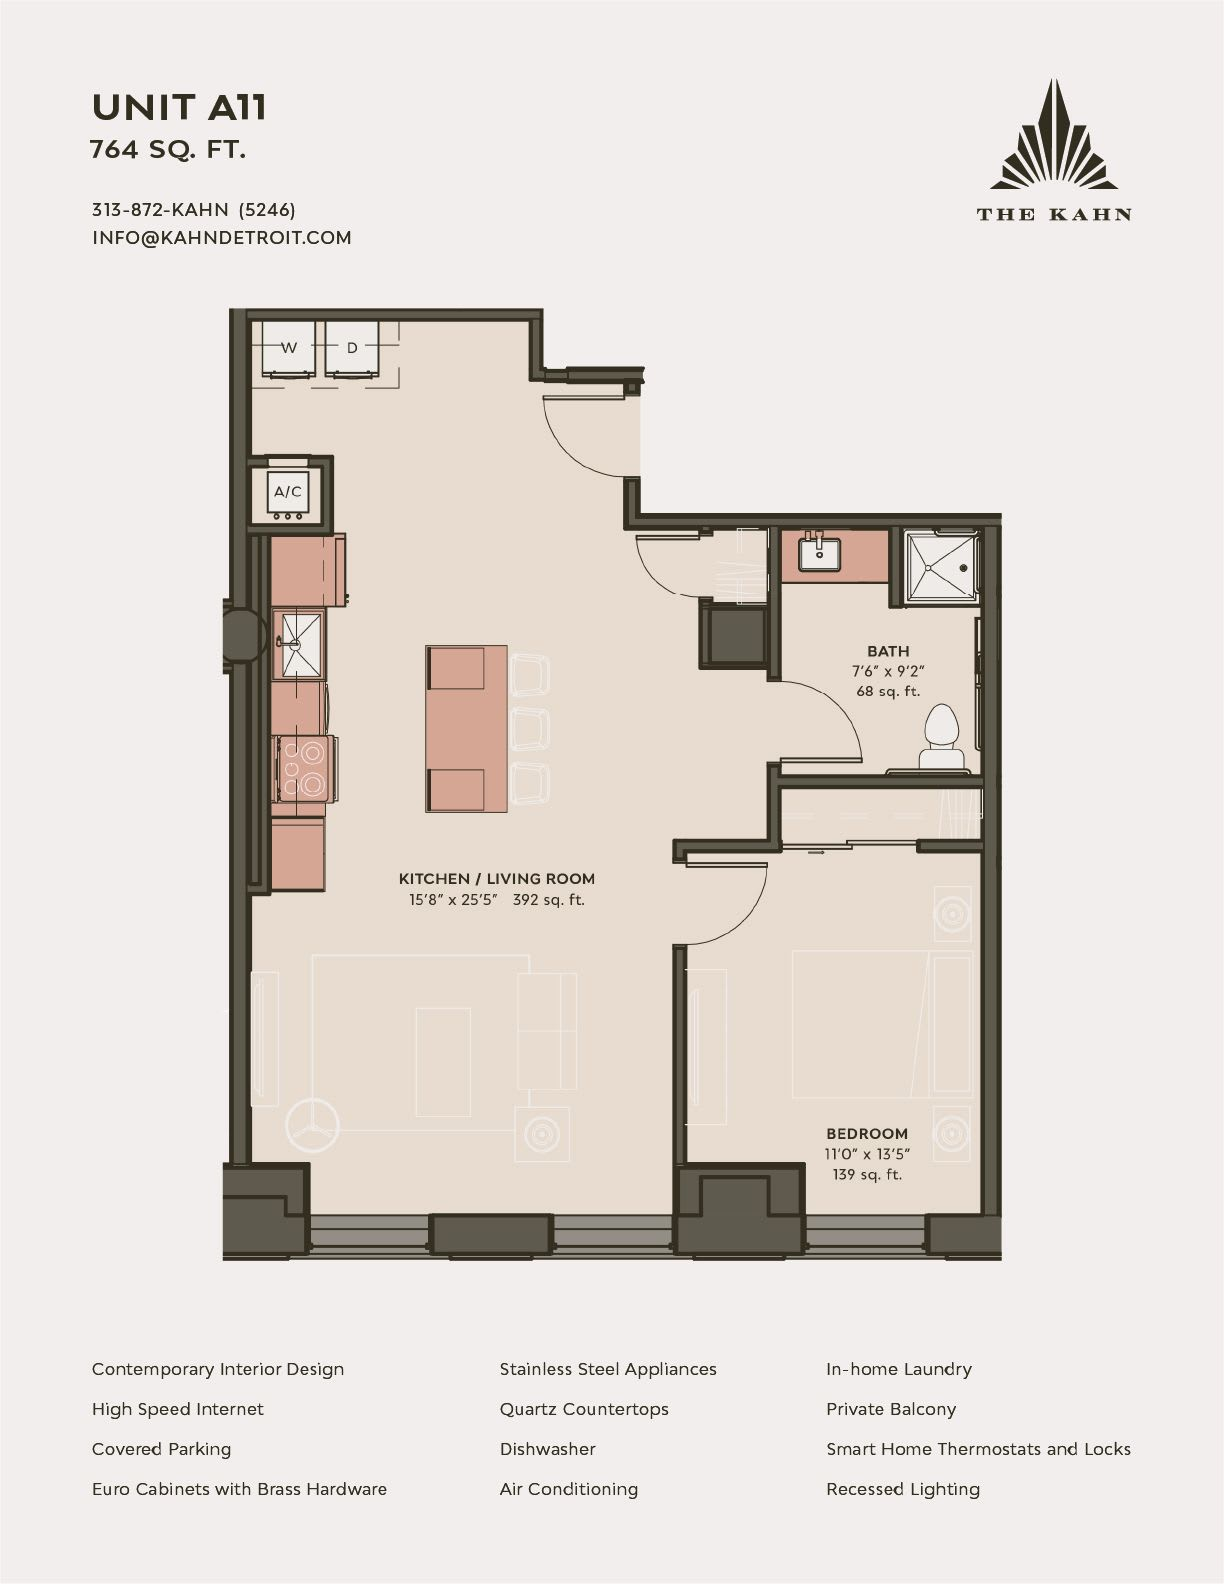 A11 floor plan image at The Kahn in Detroit, Michigan